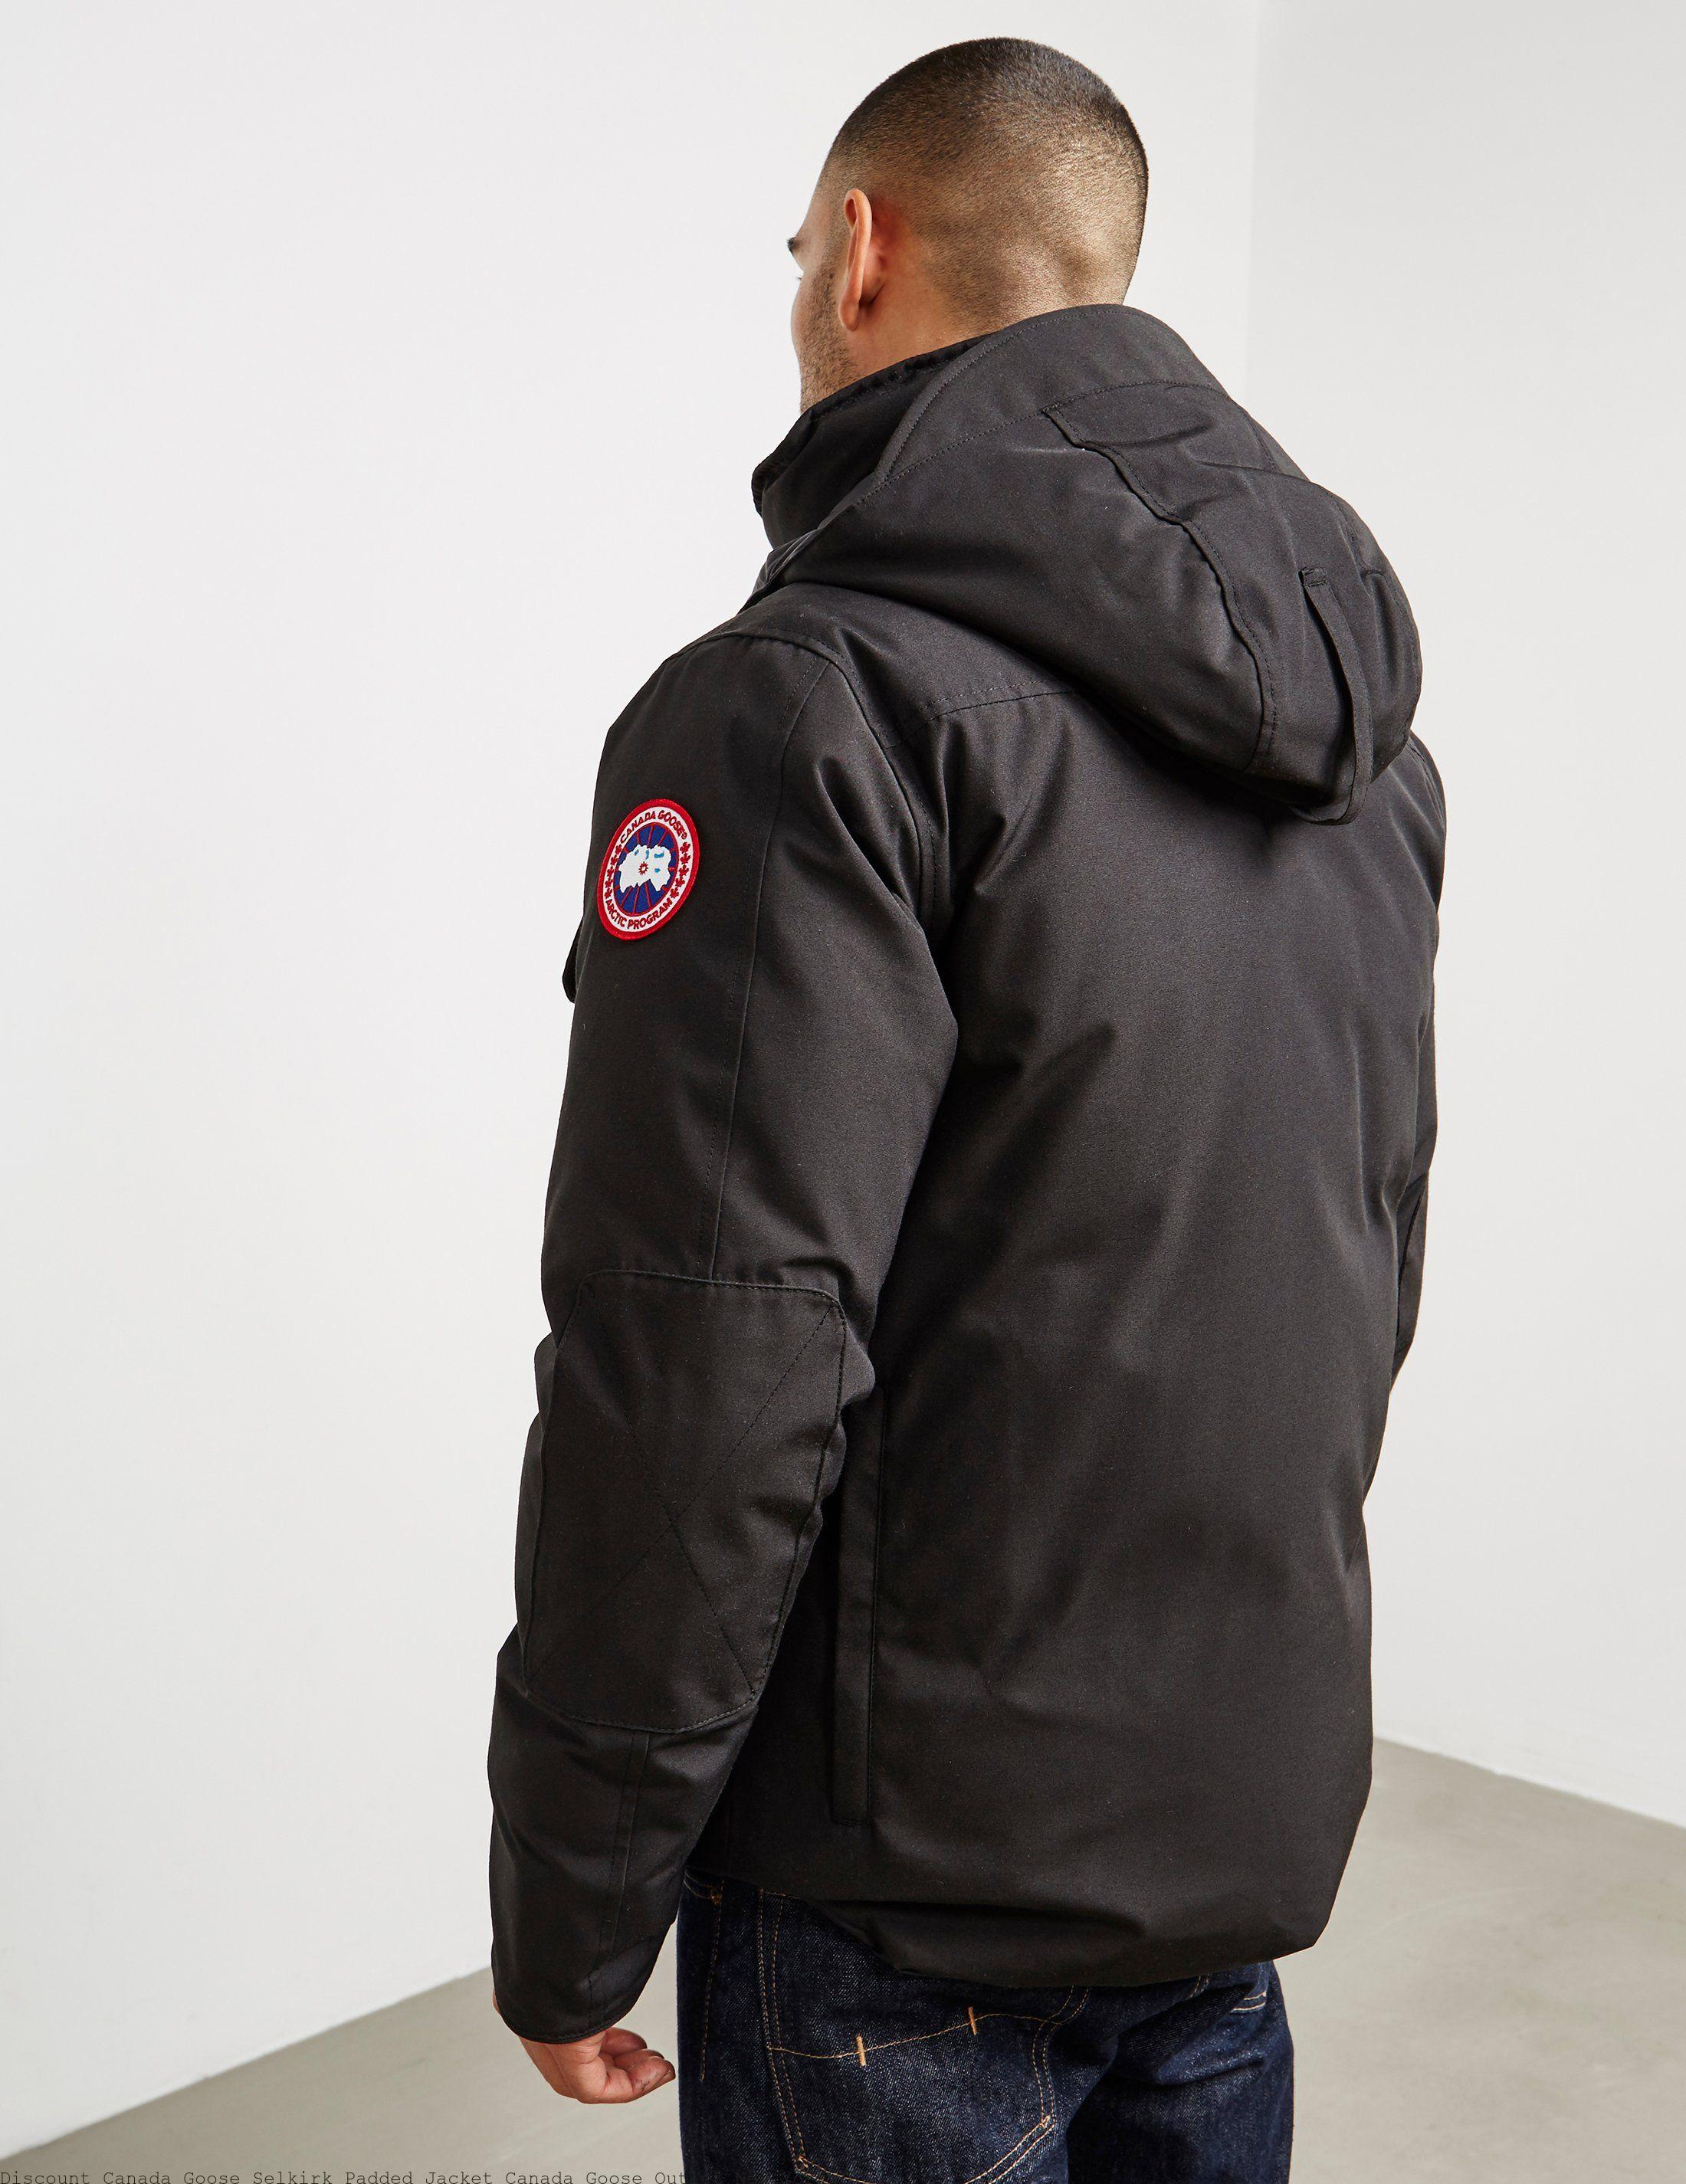 Discount Canada Goose Selkirk Padded Jacket Canada Goose Outlet New York –  Buying Cheap Canada Goose Outlet Jacket Online?